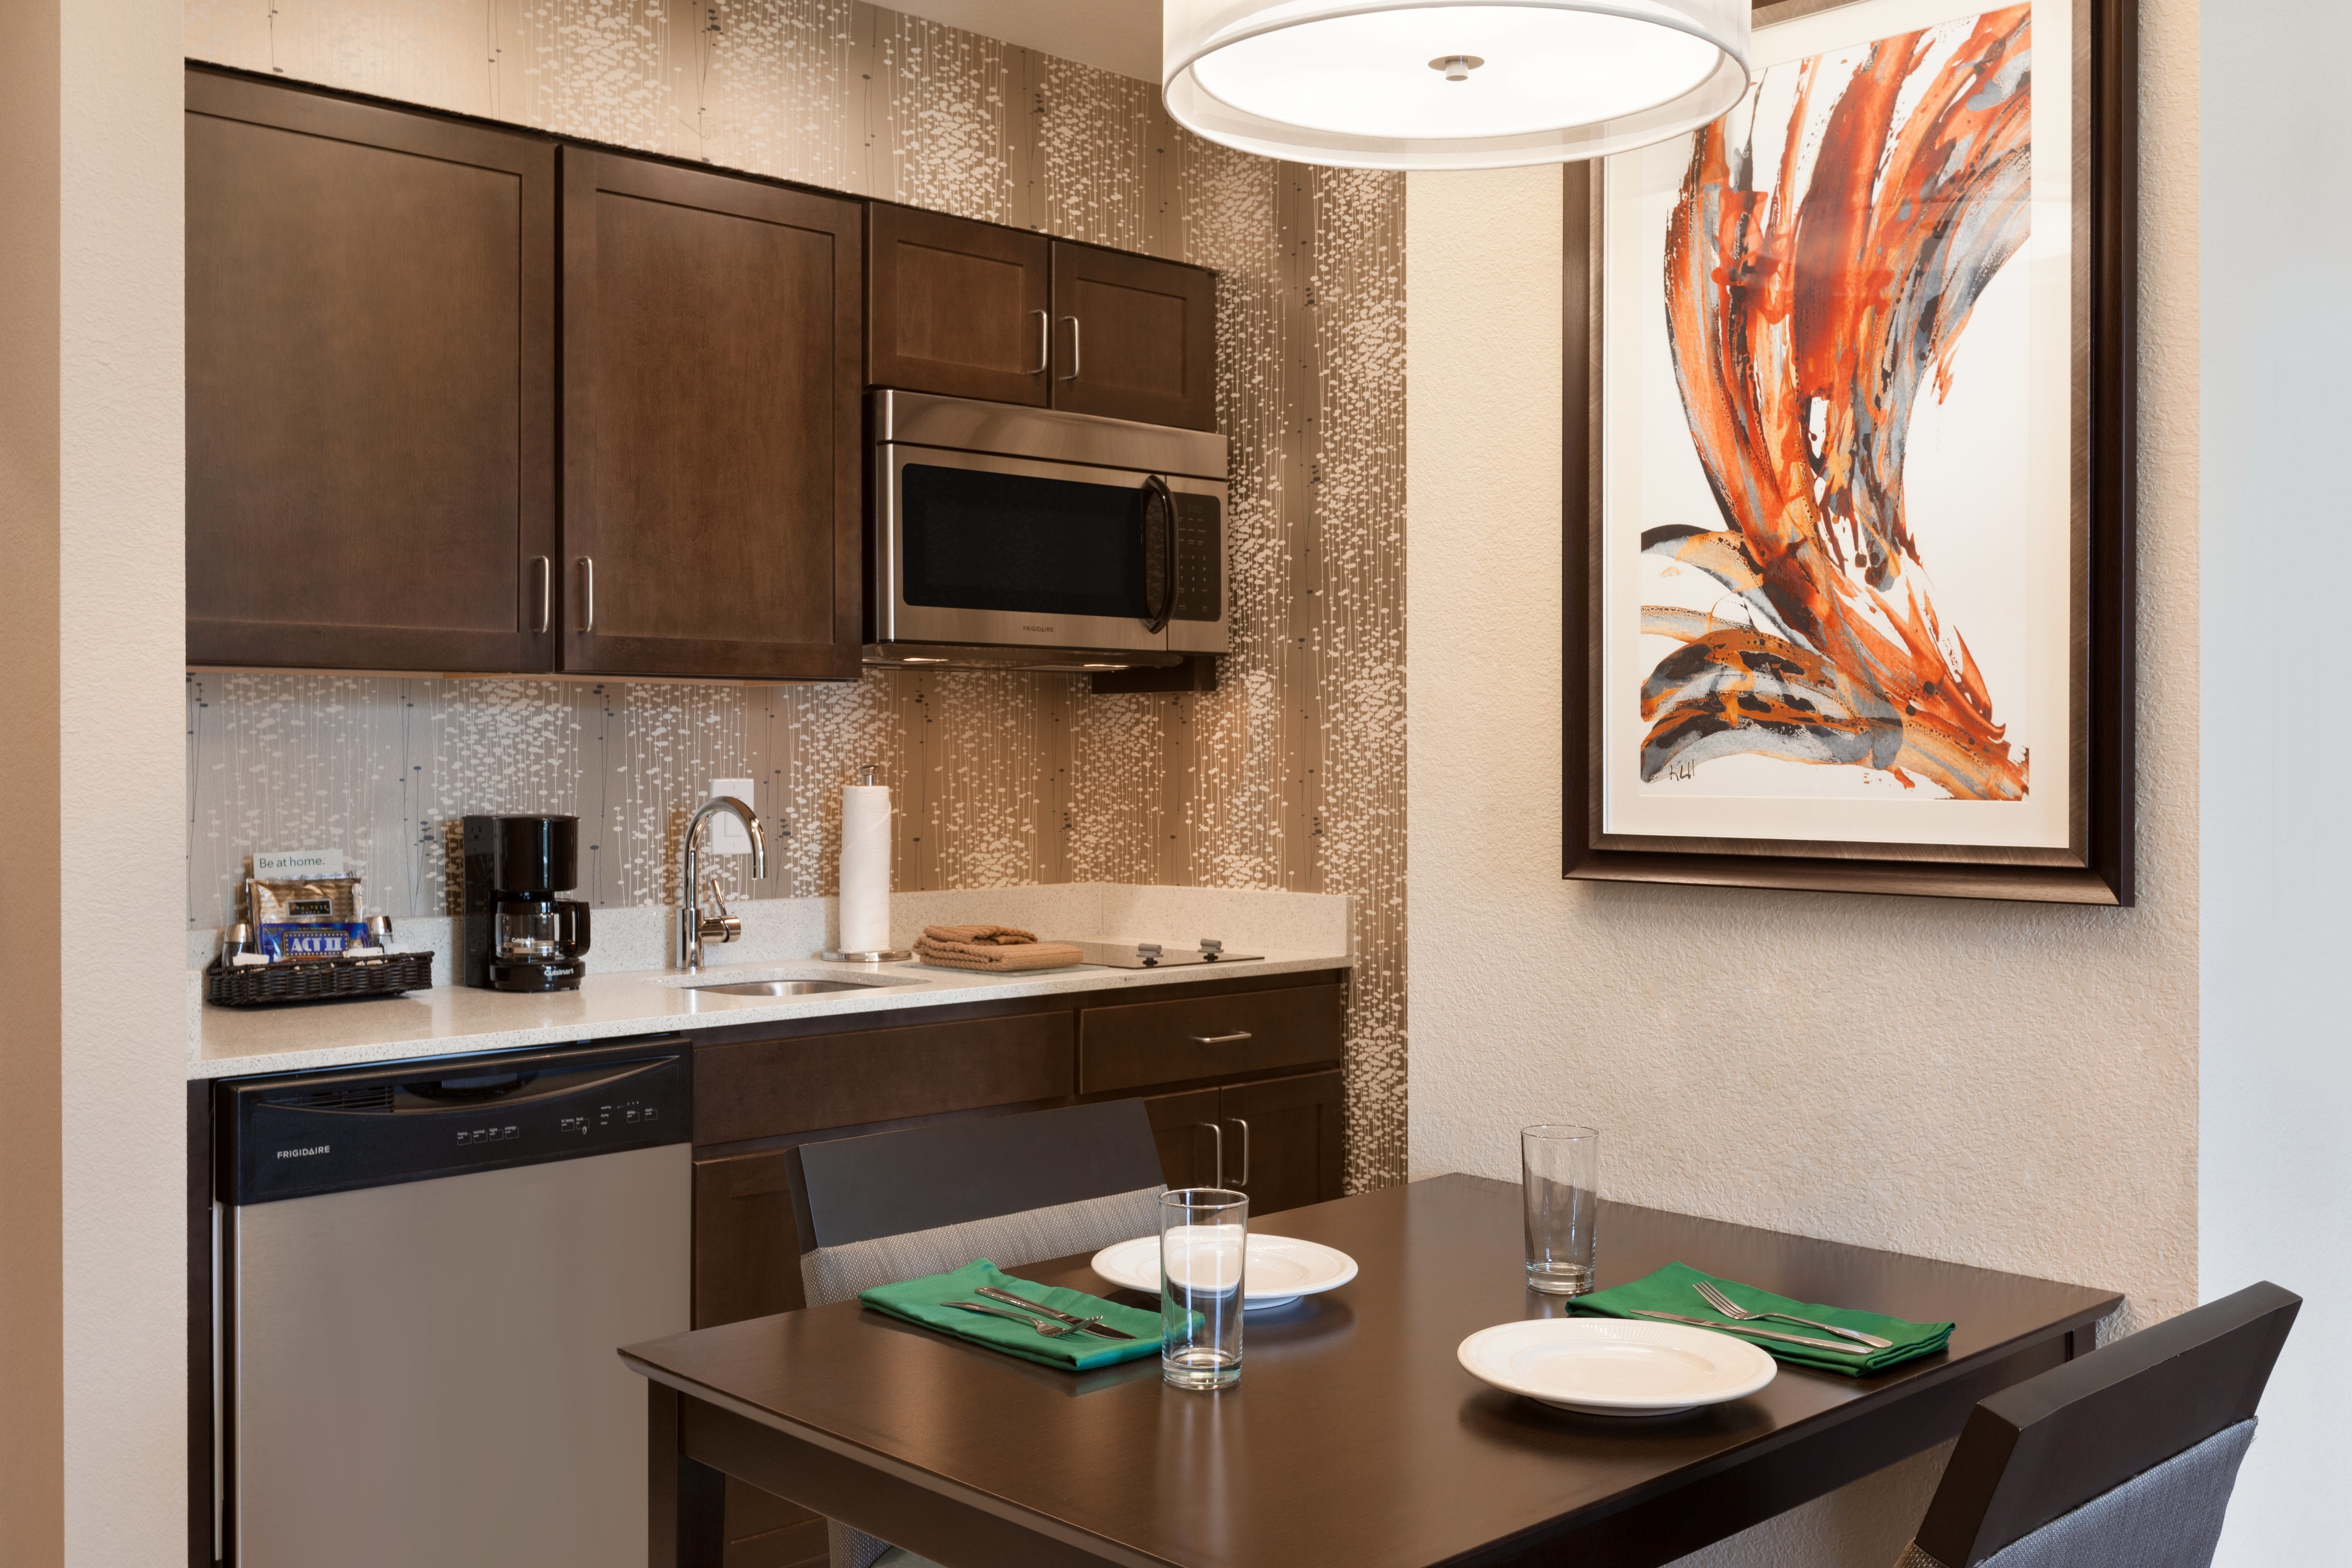 Homewood Suites by Hilton North Houston/Spring image 7